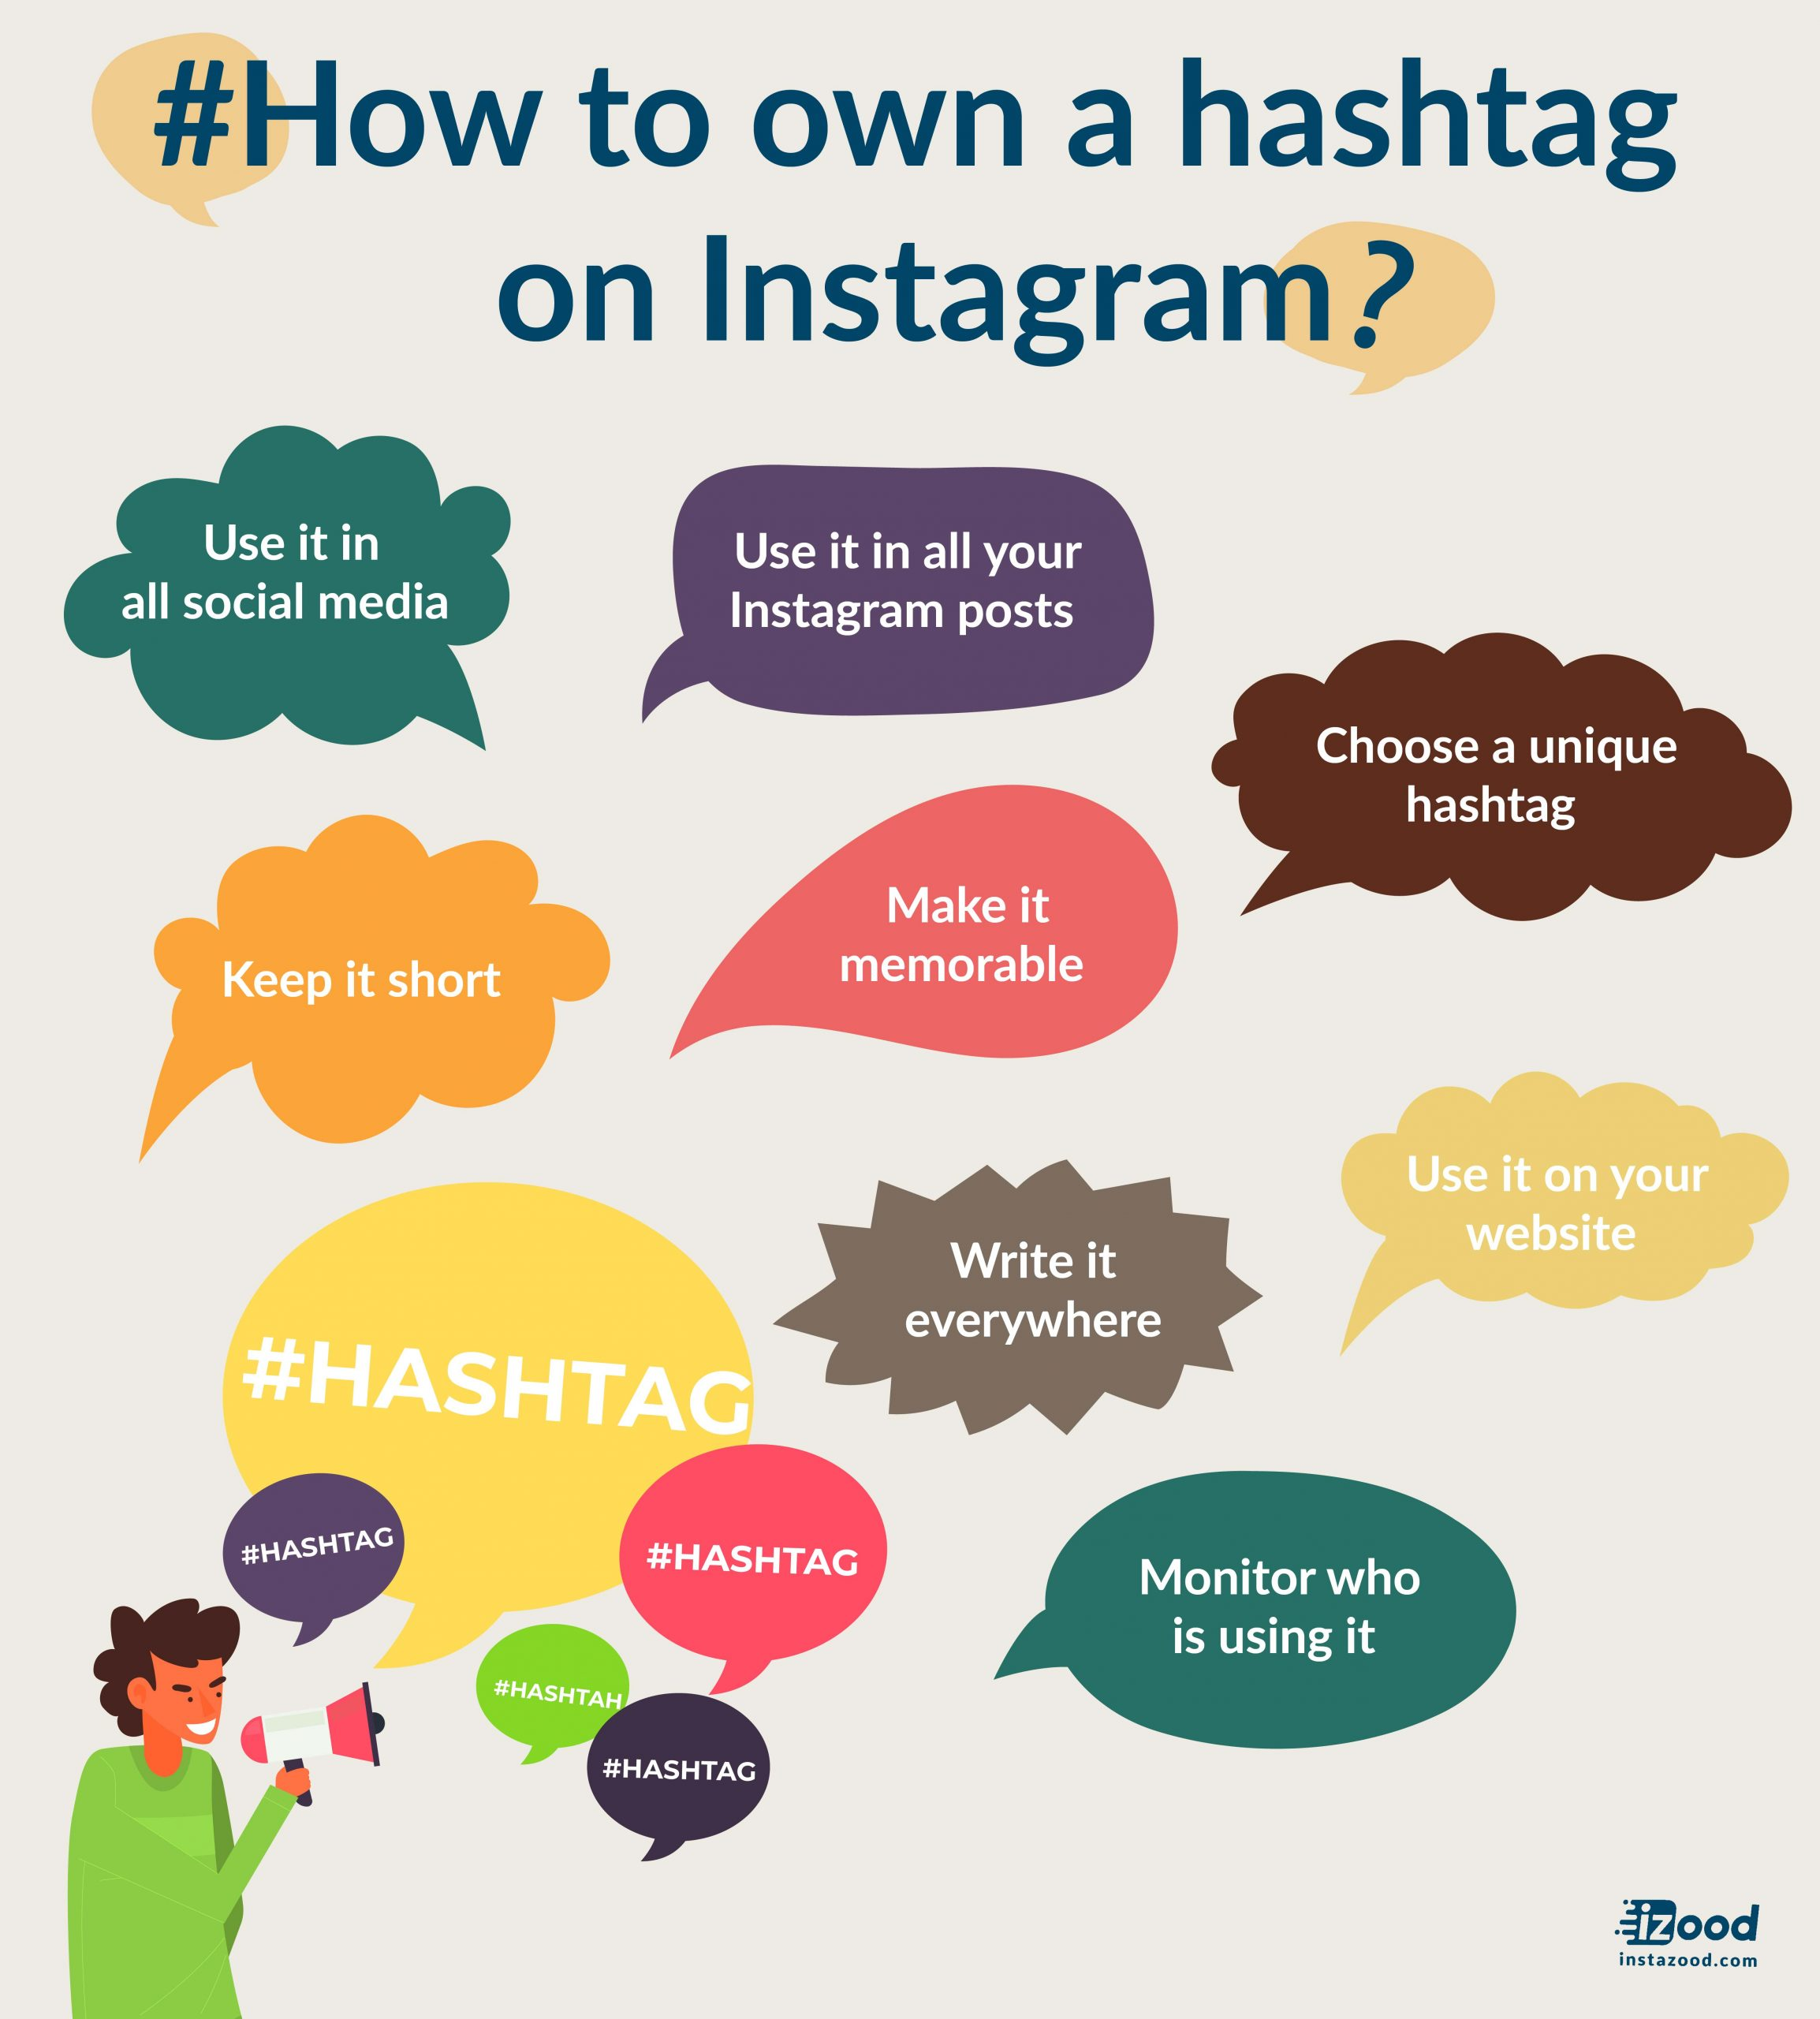 Own an Instagram hashtag infographic